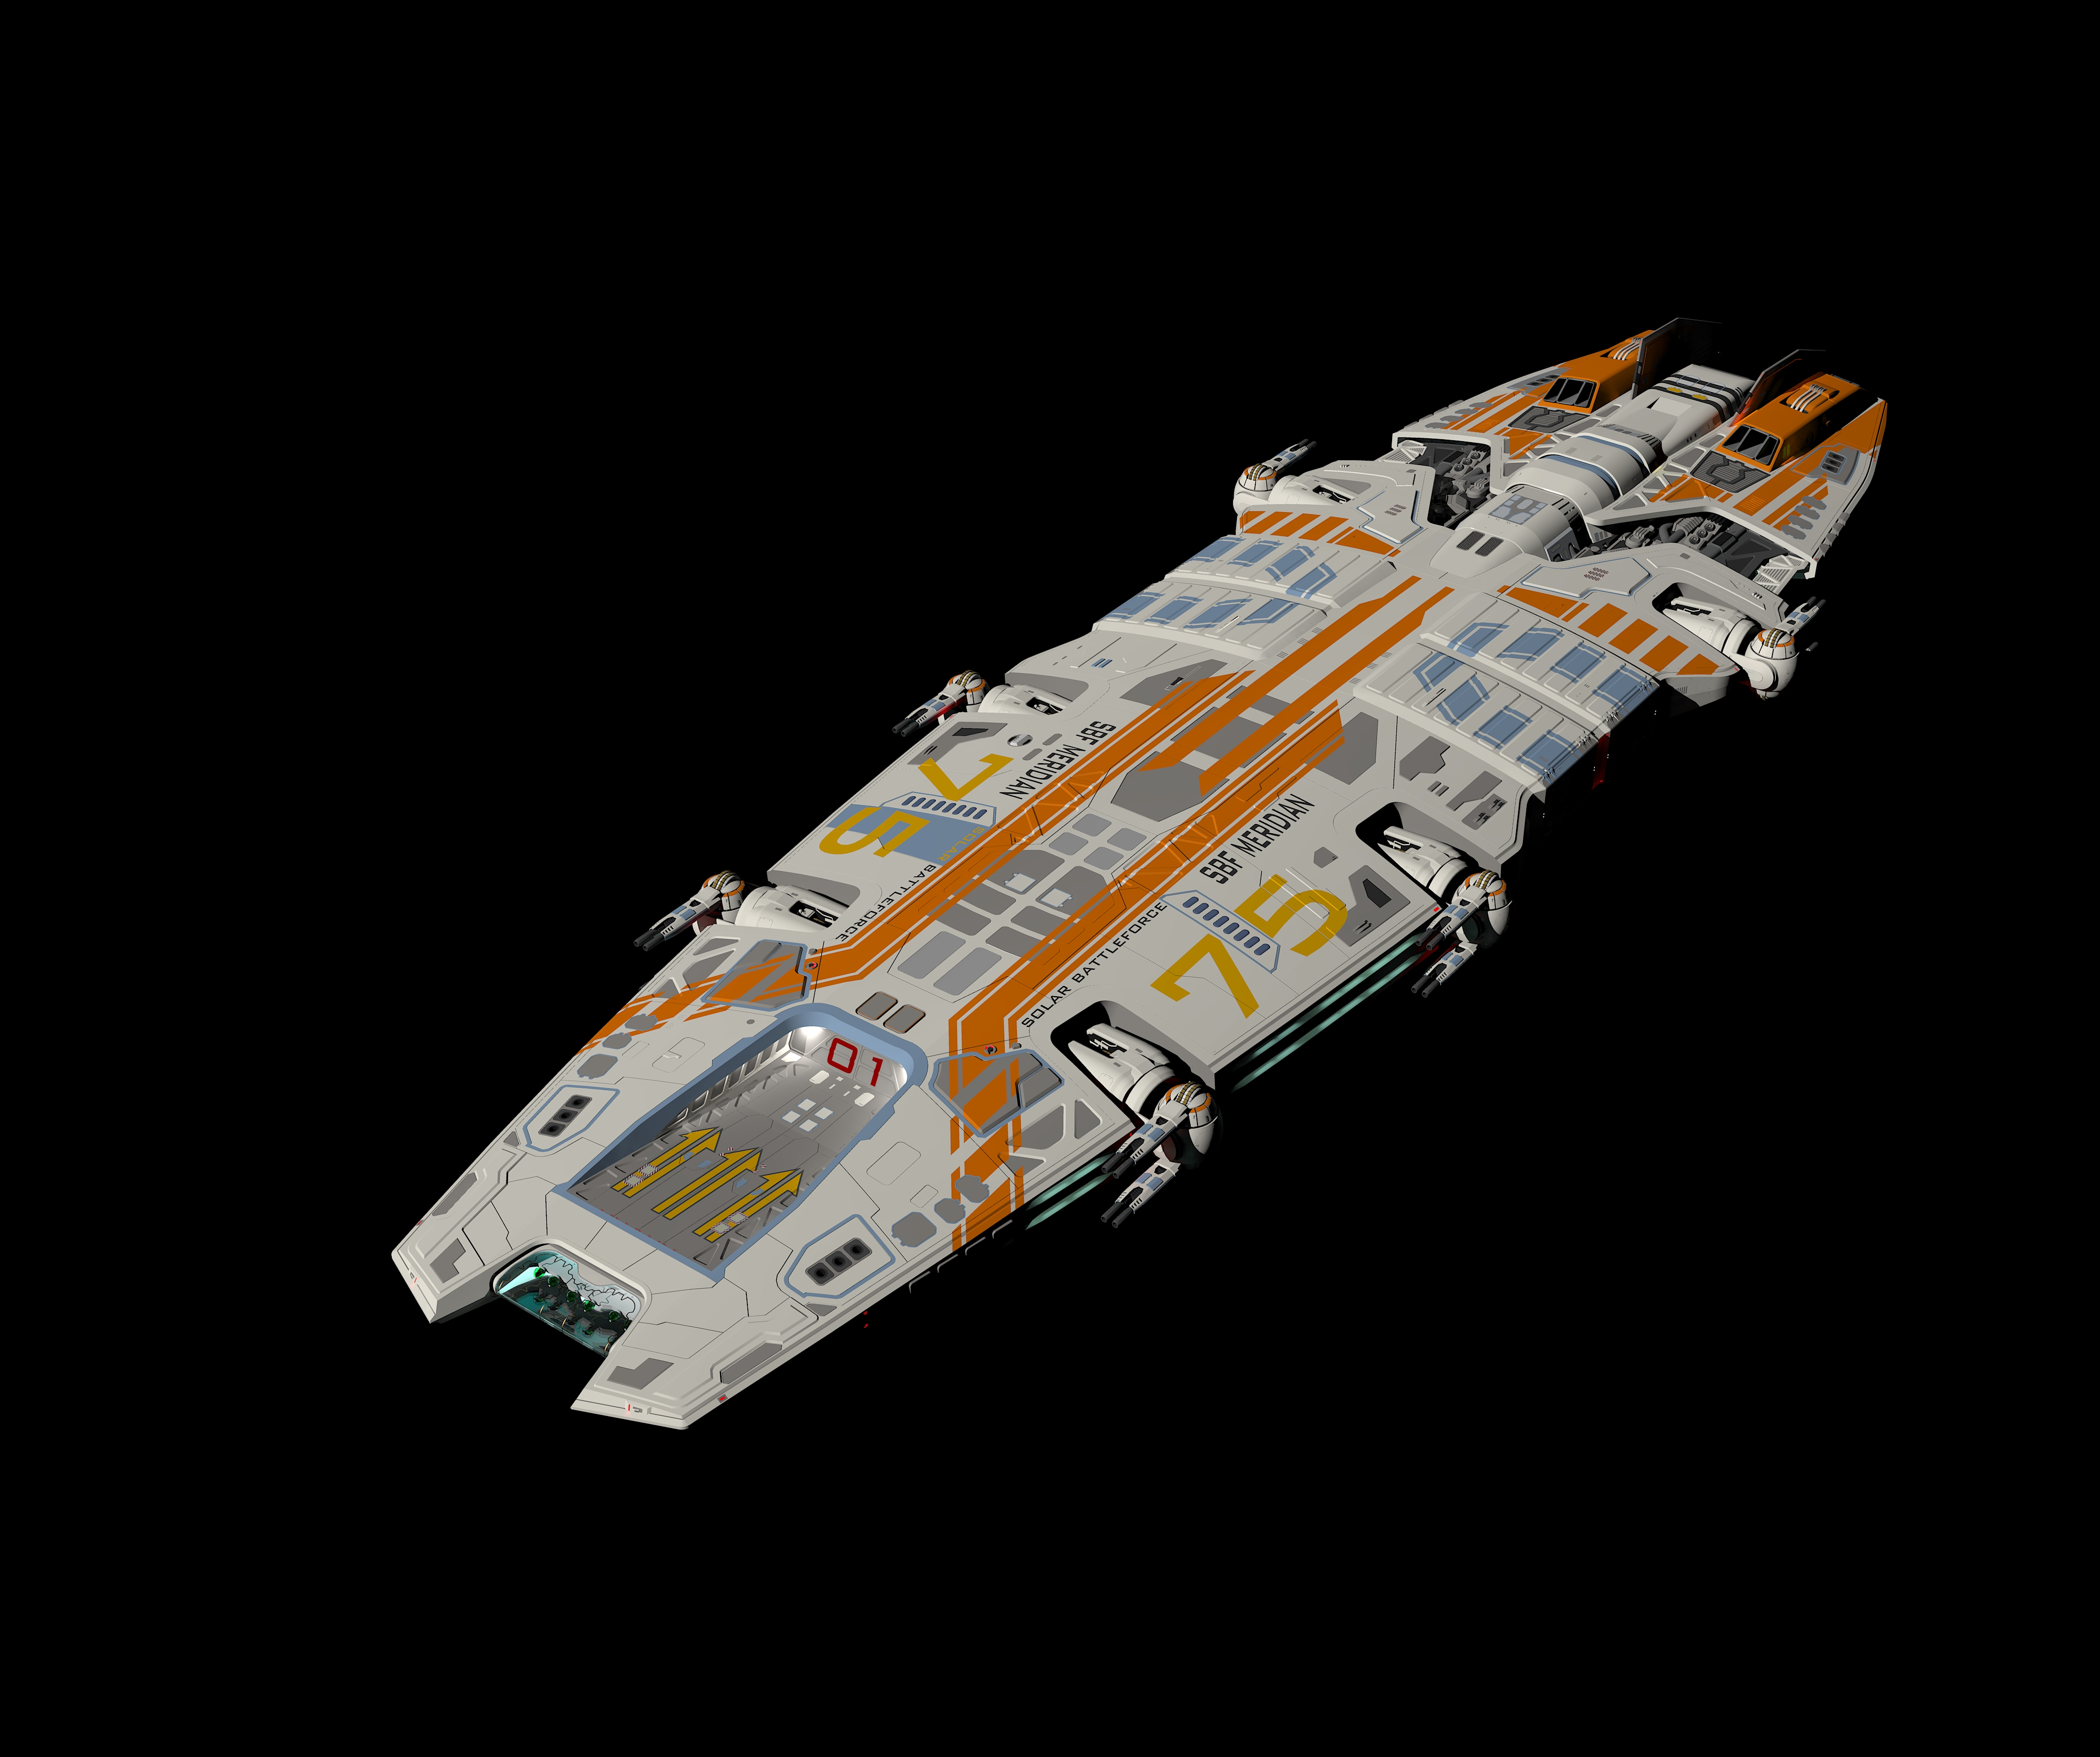 SBF Meridian Kerky render test2 by Scifiwarships